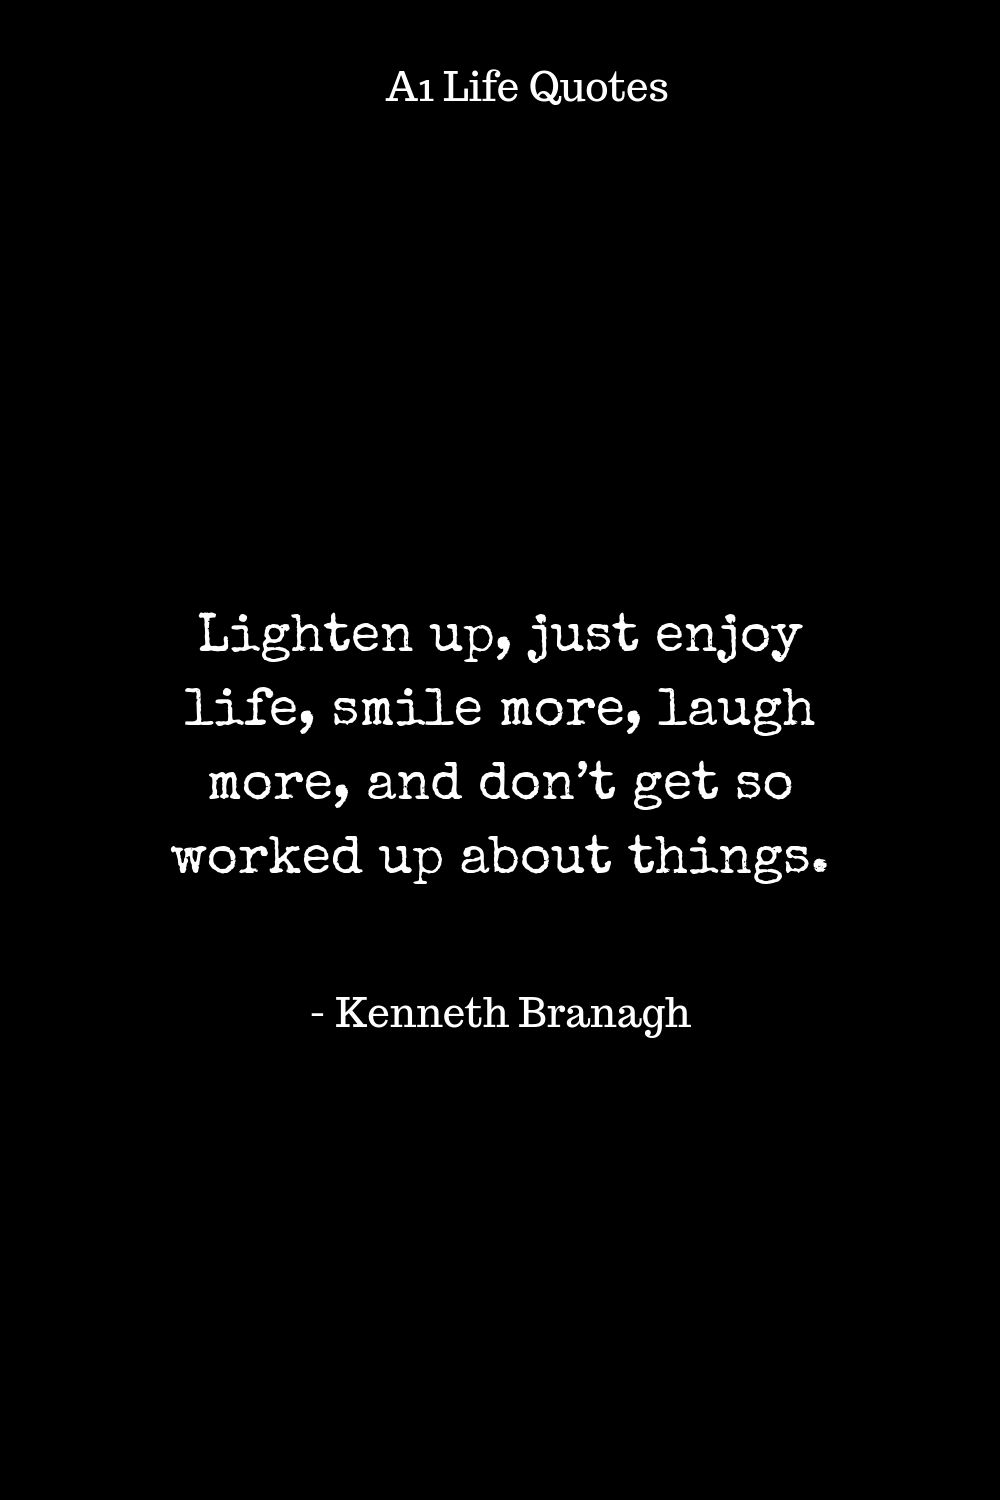 Life Is Beautiful Quotes and Sayings